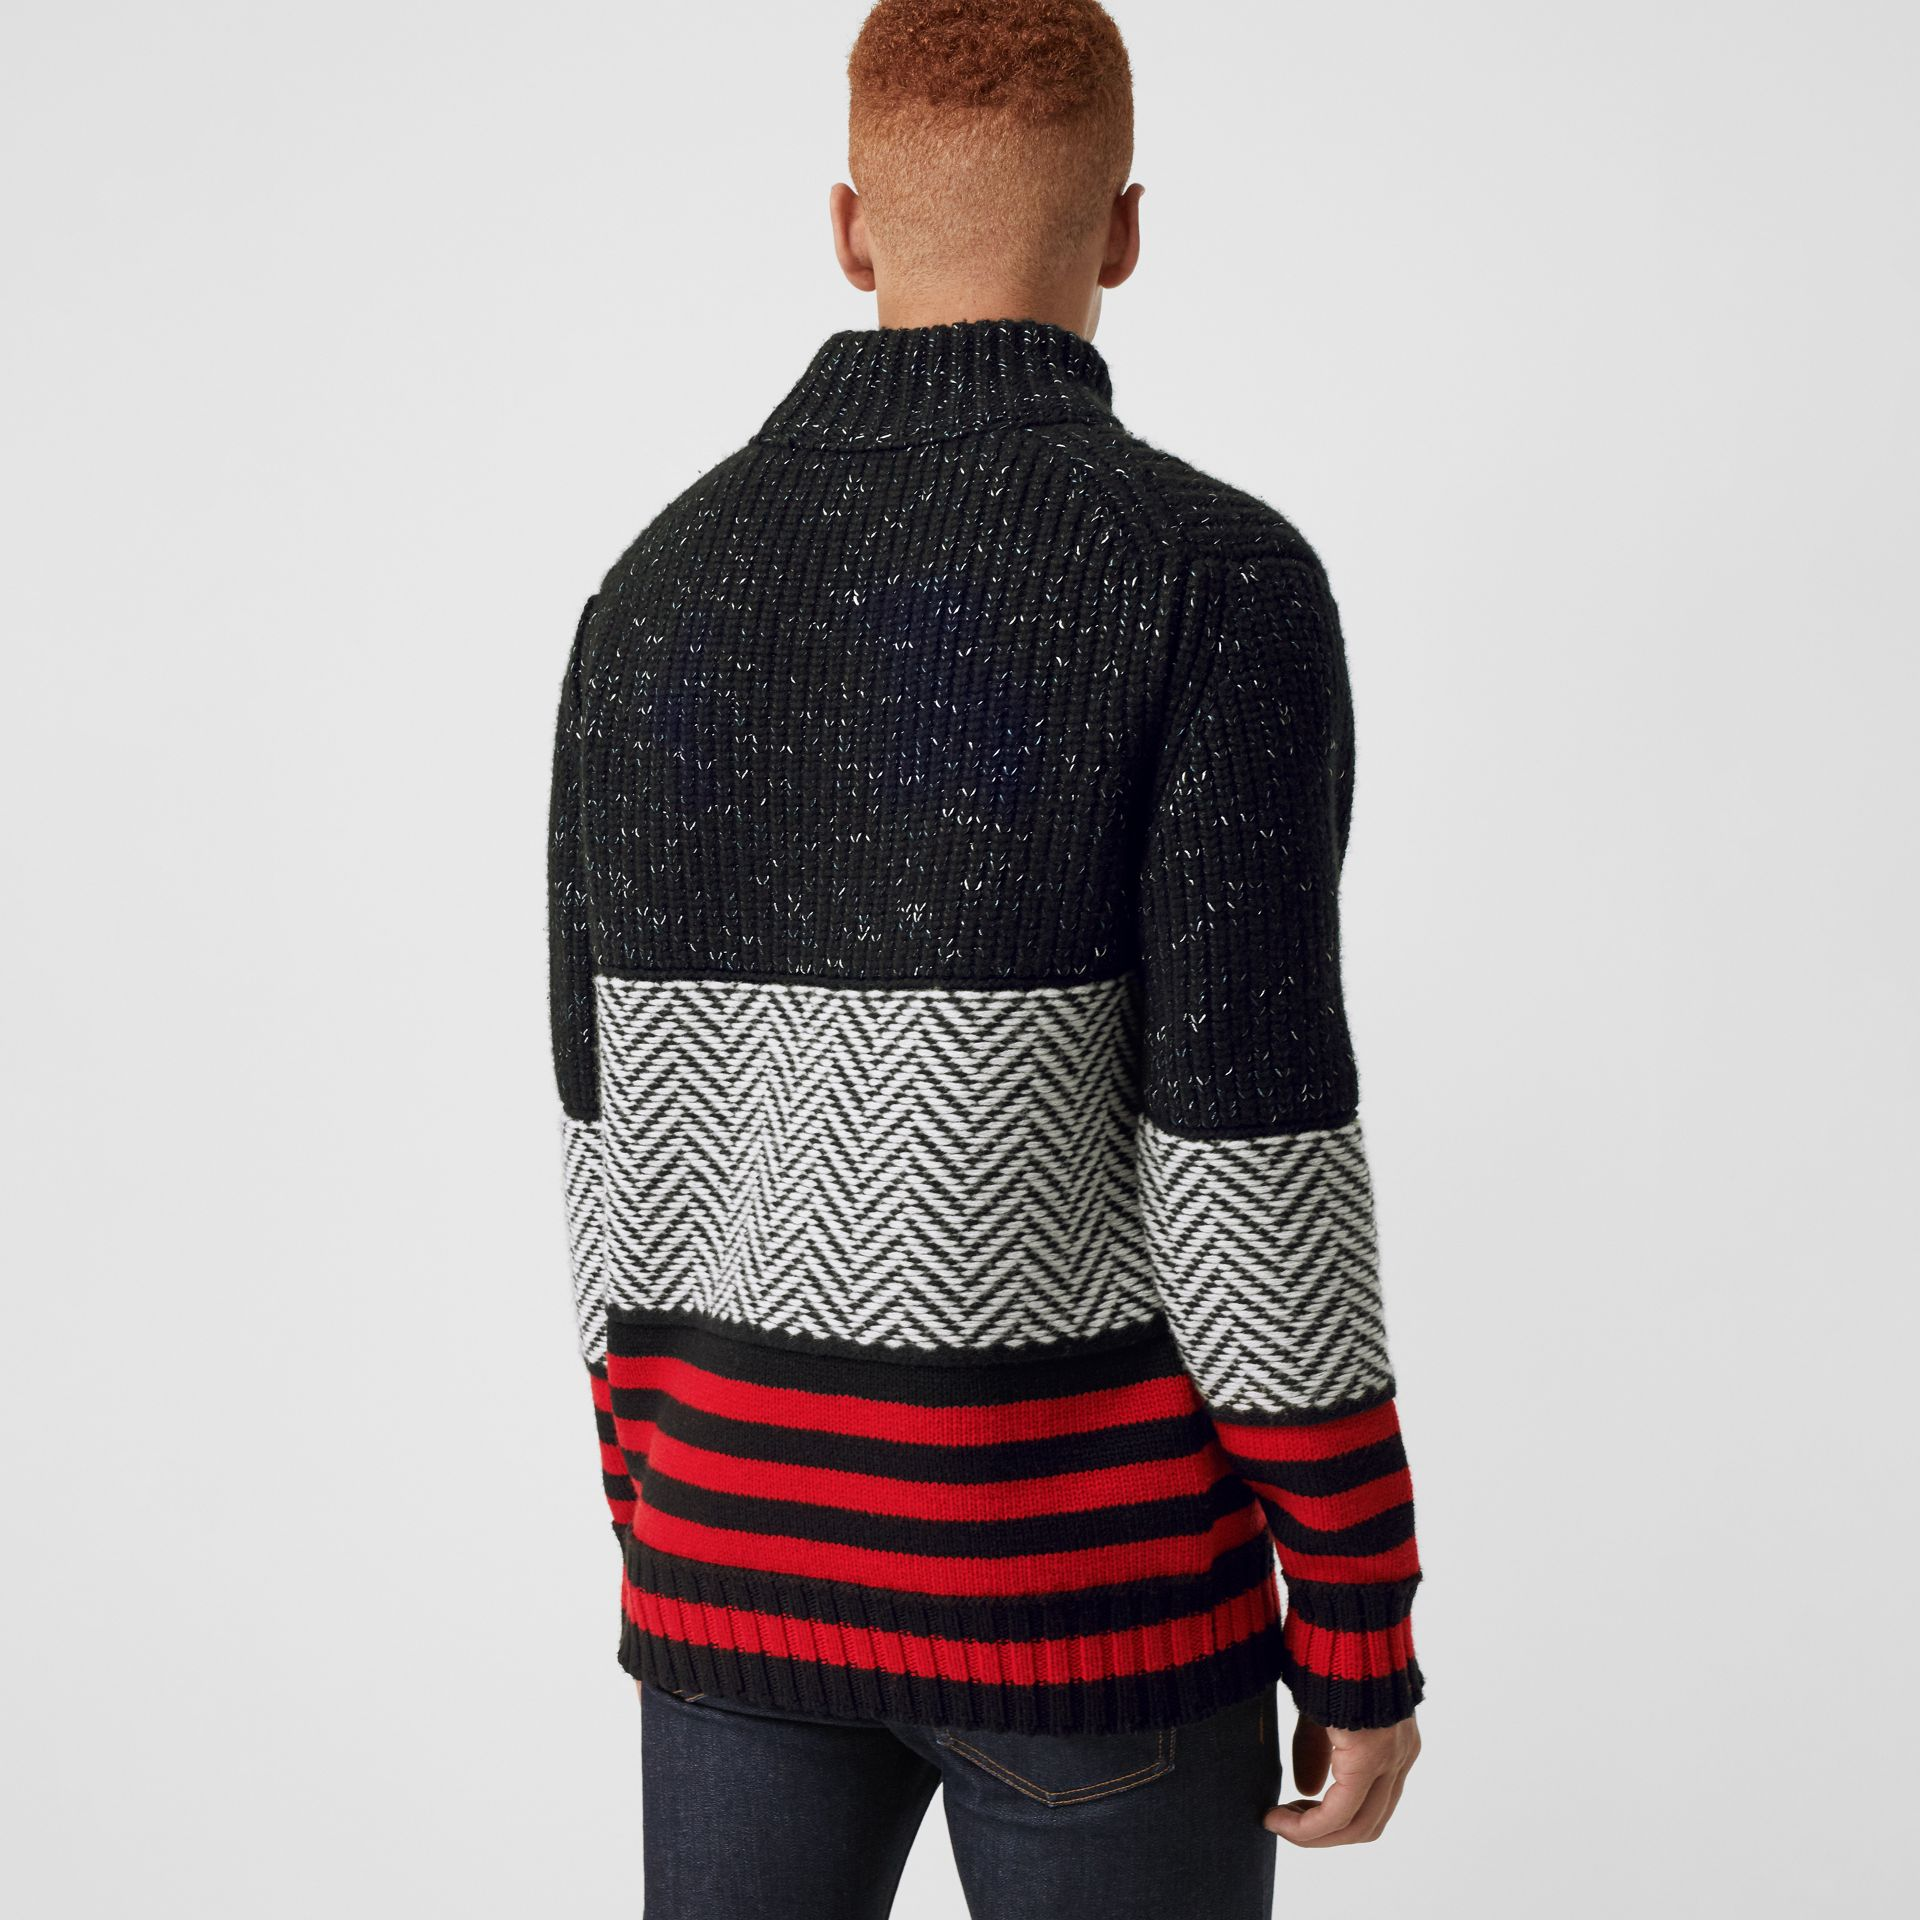 Contrast Knit Wool Cashmere Blend Sweater in Black - Men | Burberry - gallery image 2